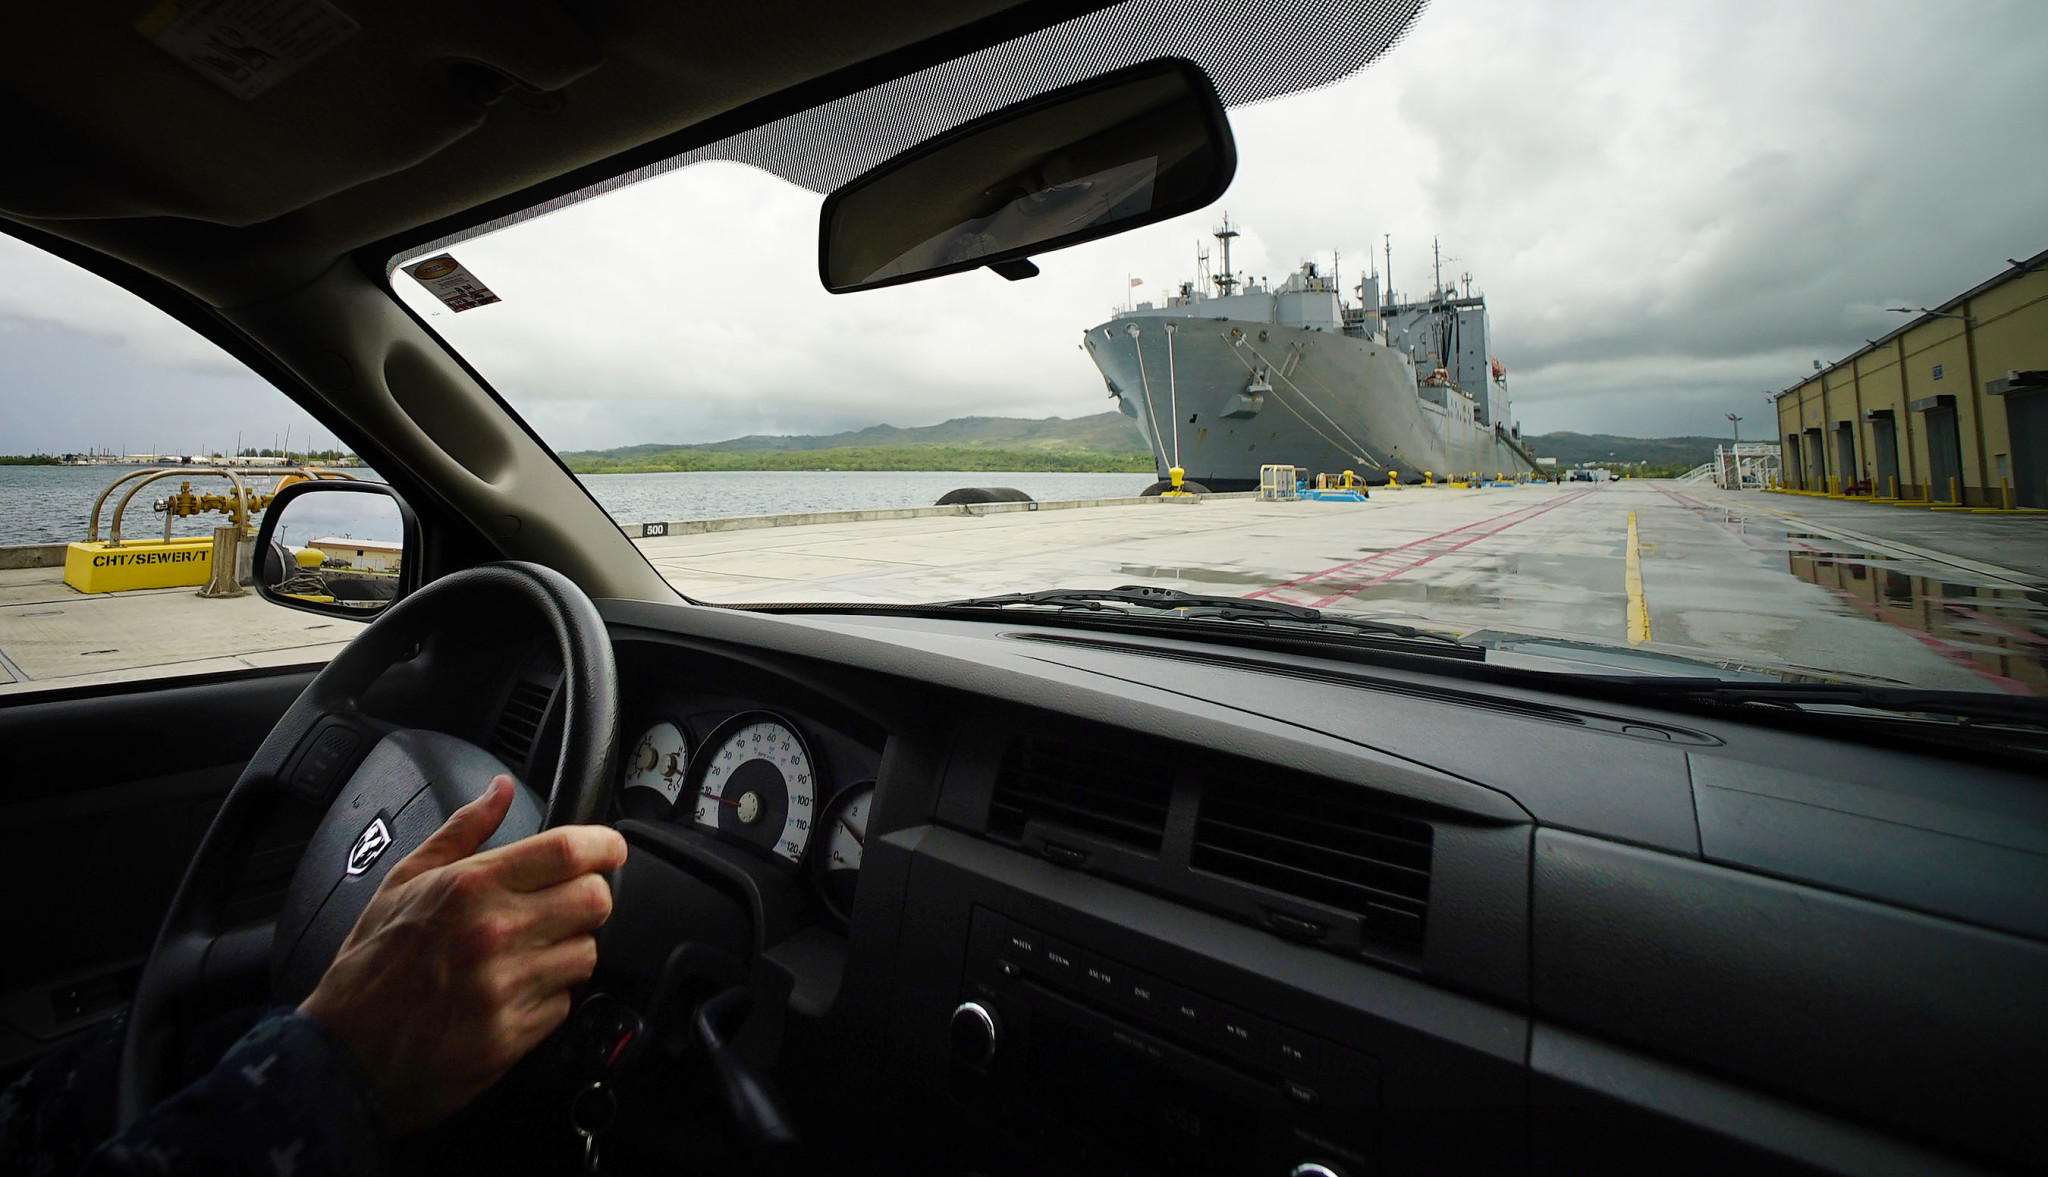 Guam US Navy Base Marianas on tour with base commander. 22 aug 2016